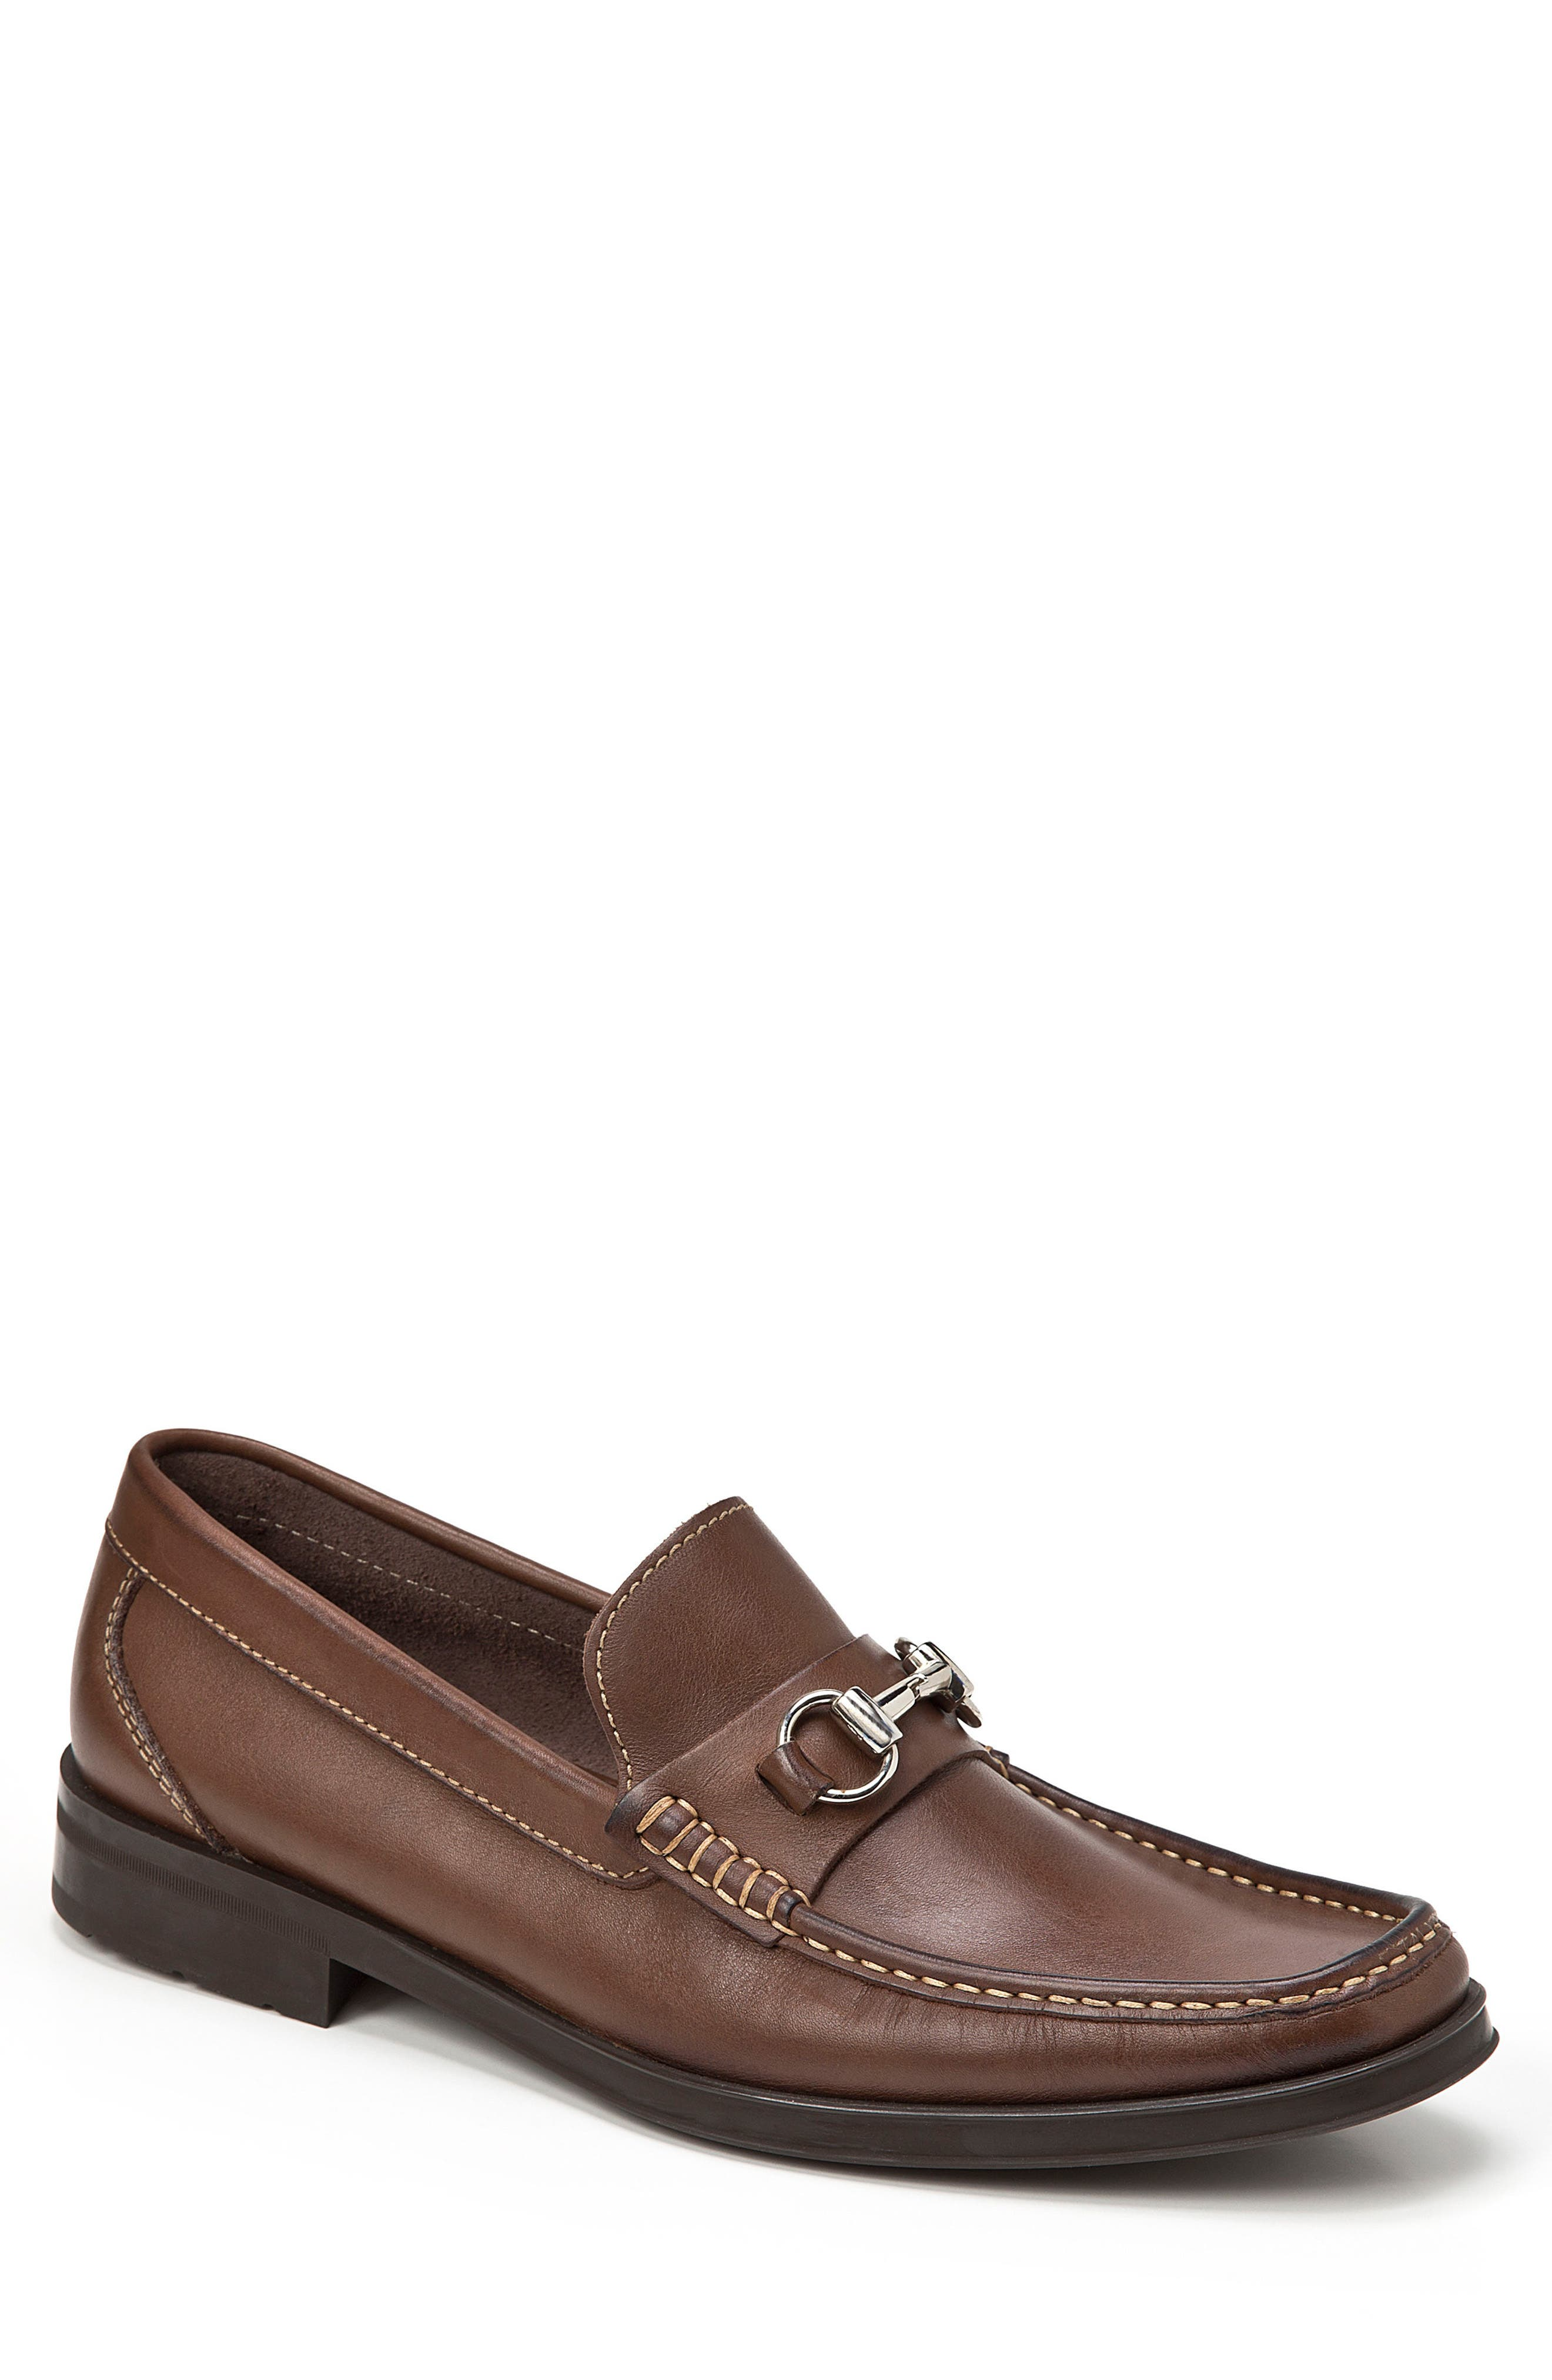 Ernesto Bit Loafer,                         Main,                         color, Brown